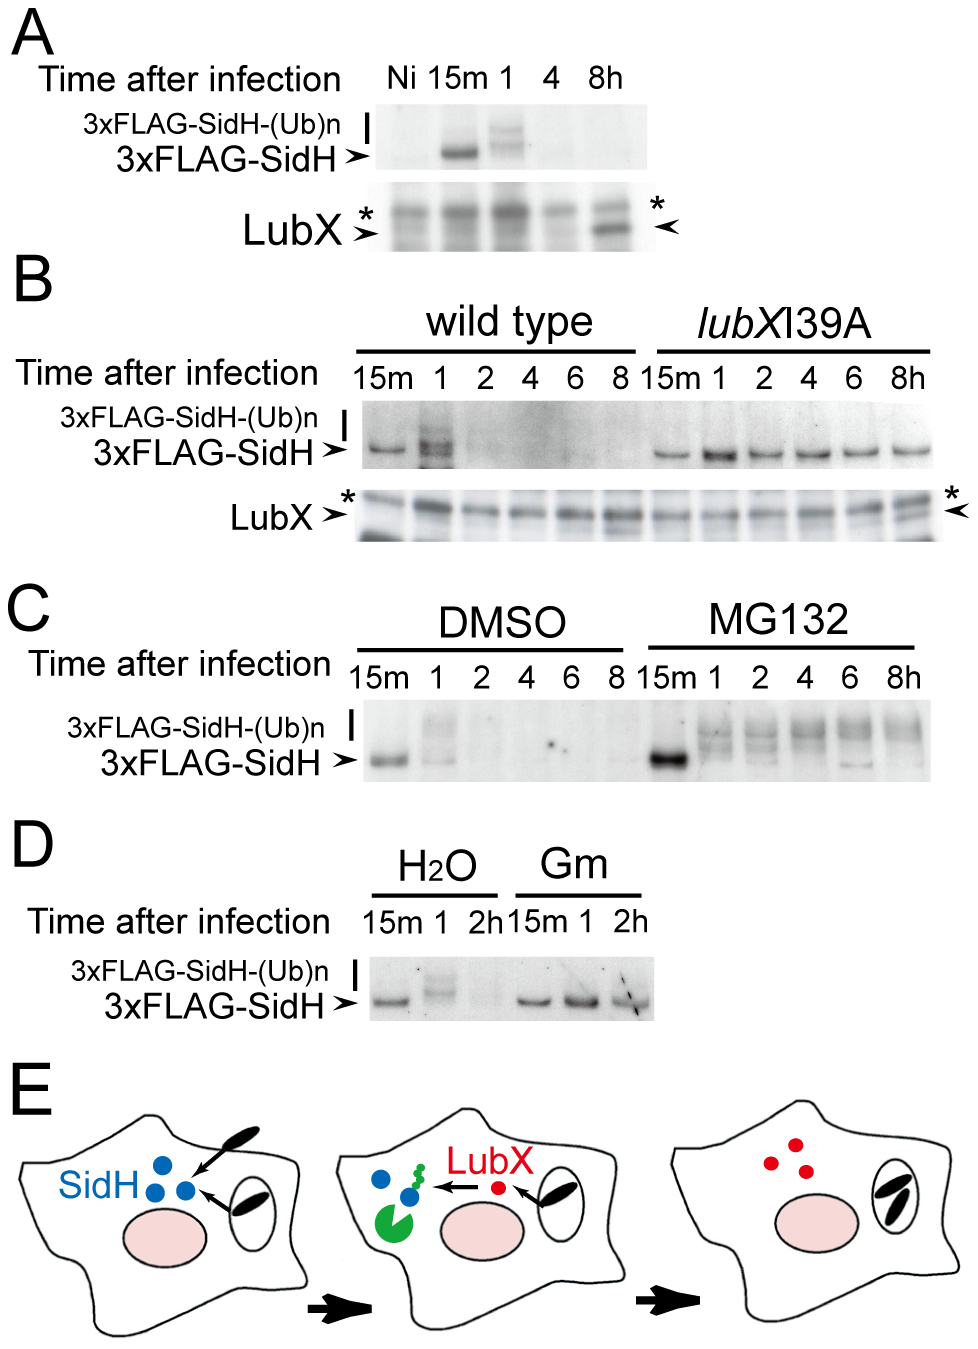 Temporal regulation of SidH is mediated by ubiquitin ligase LubX and host proteasome.